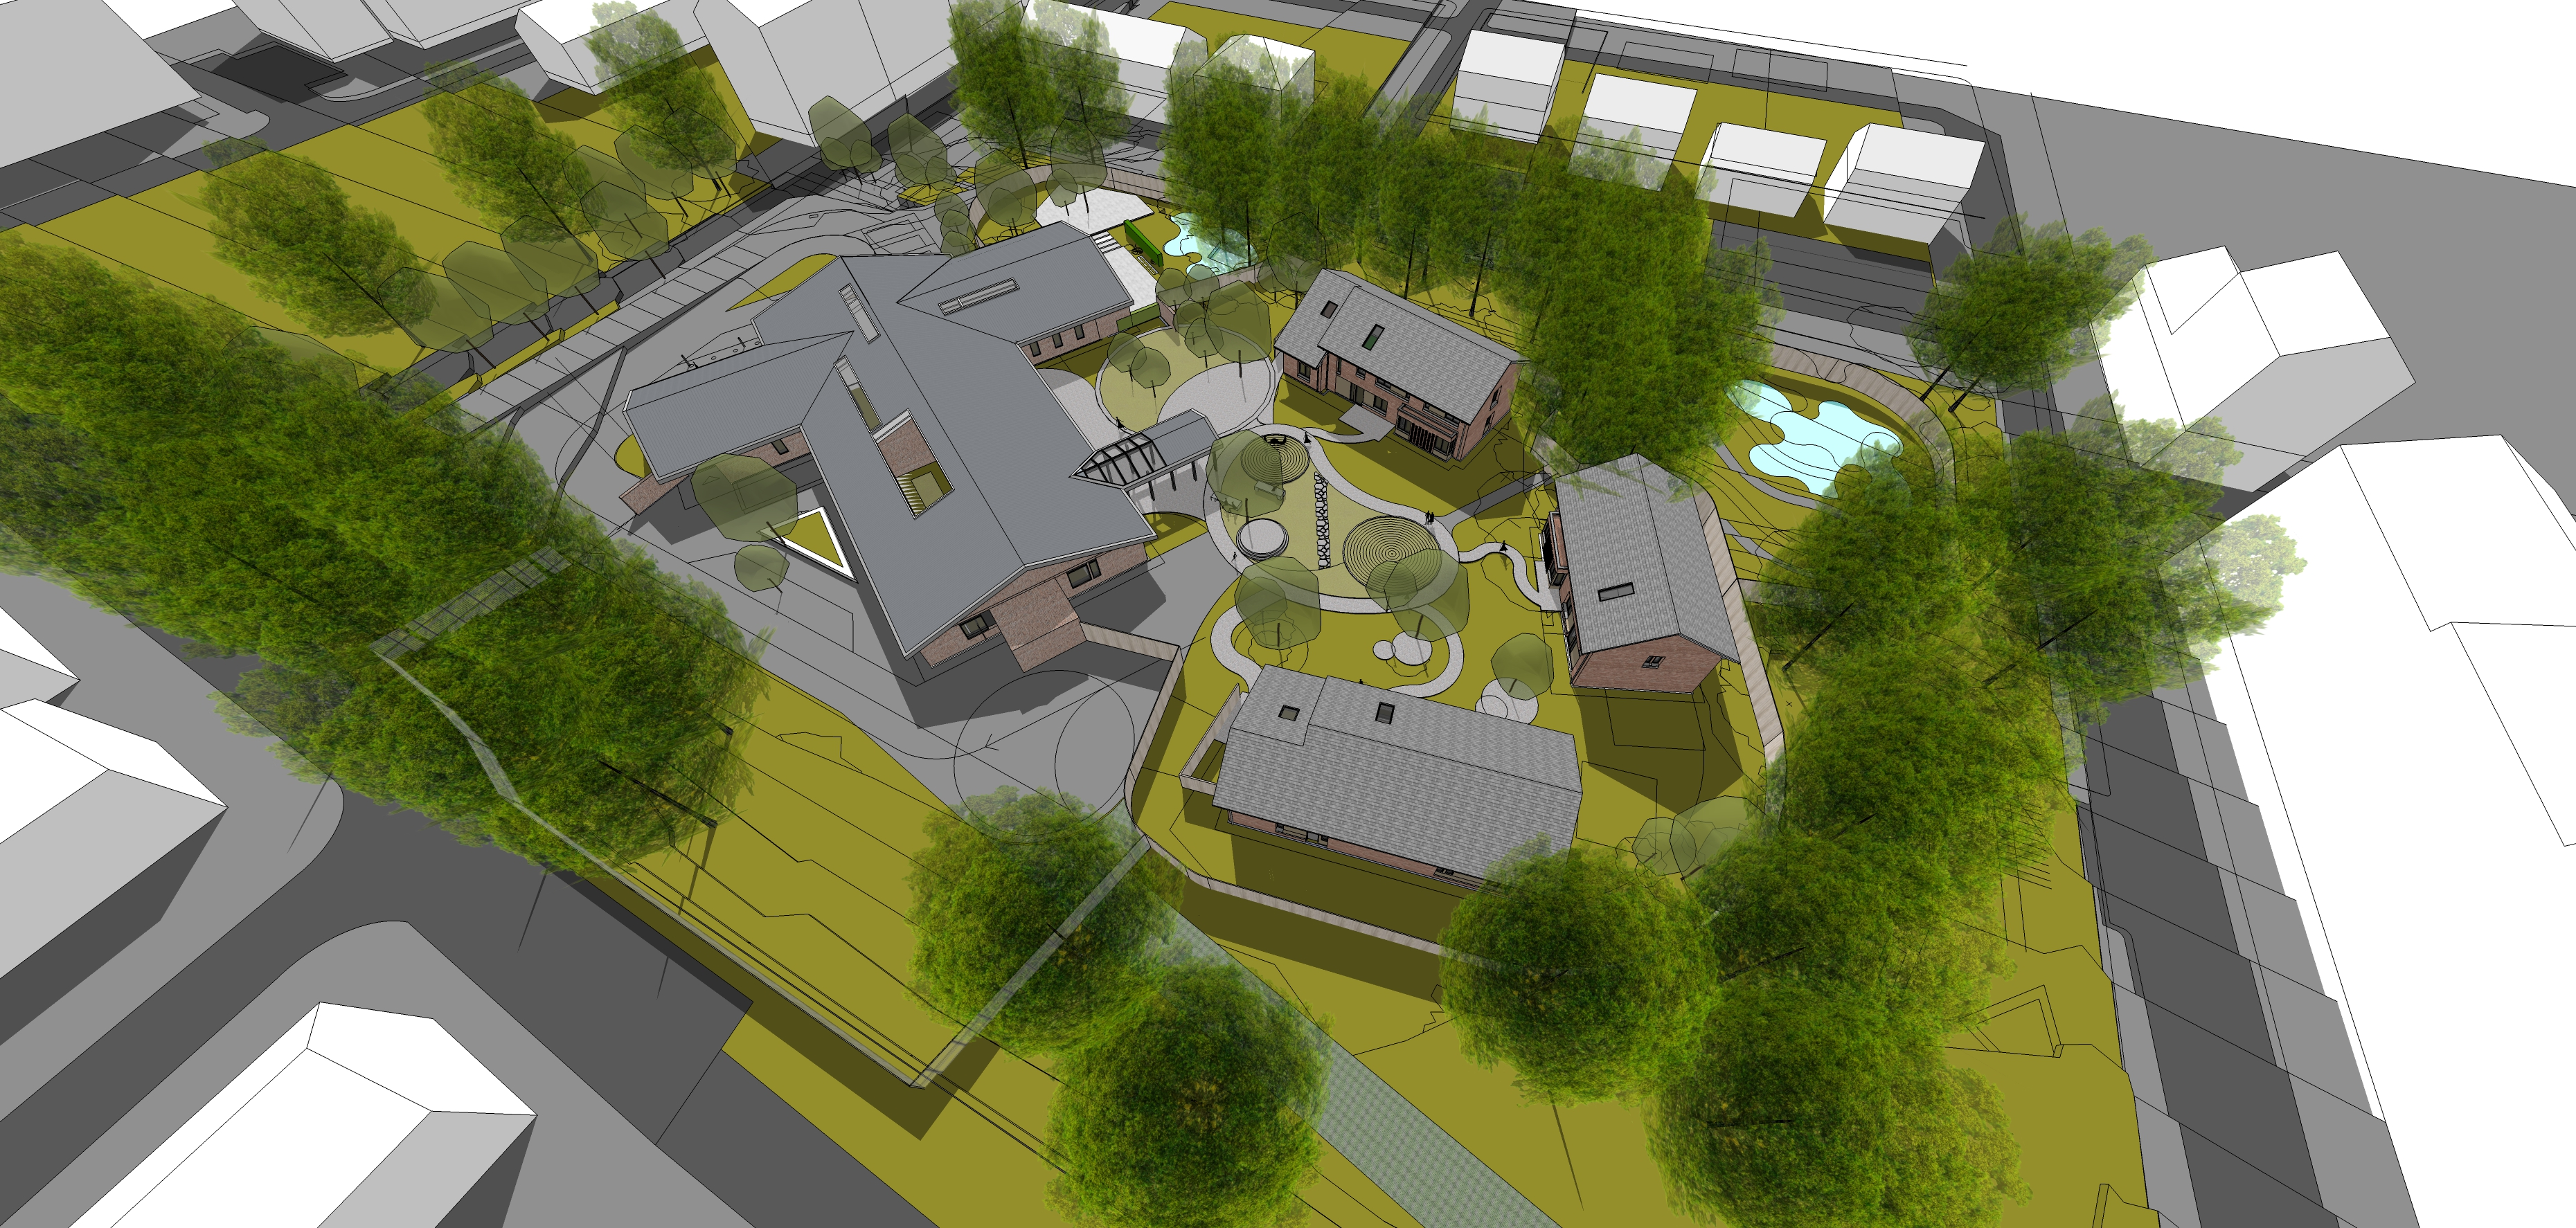 Previous artist impressions of Custody Unit in the Hilltown